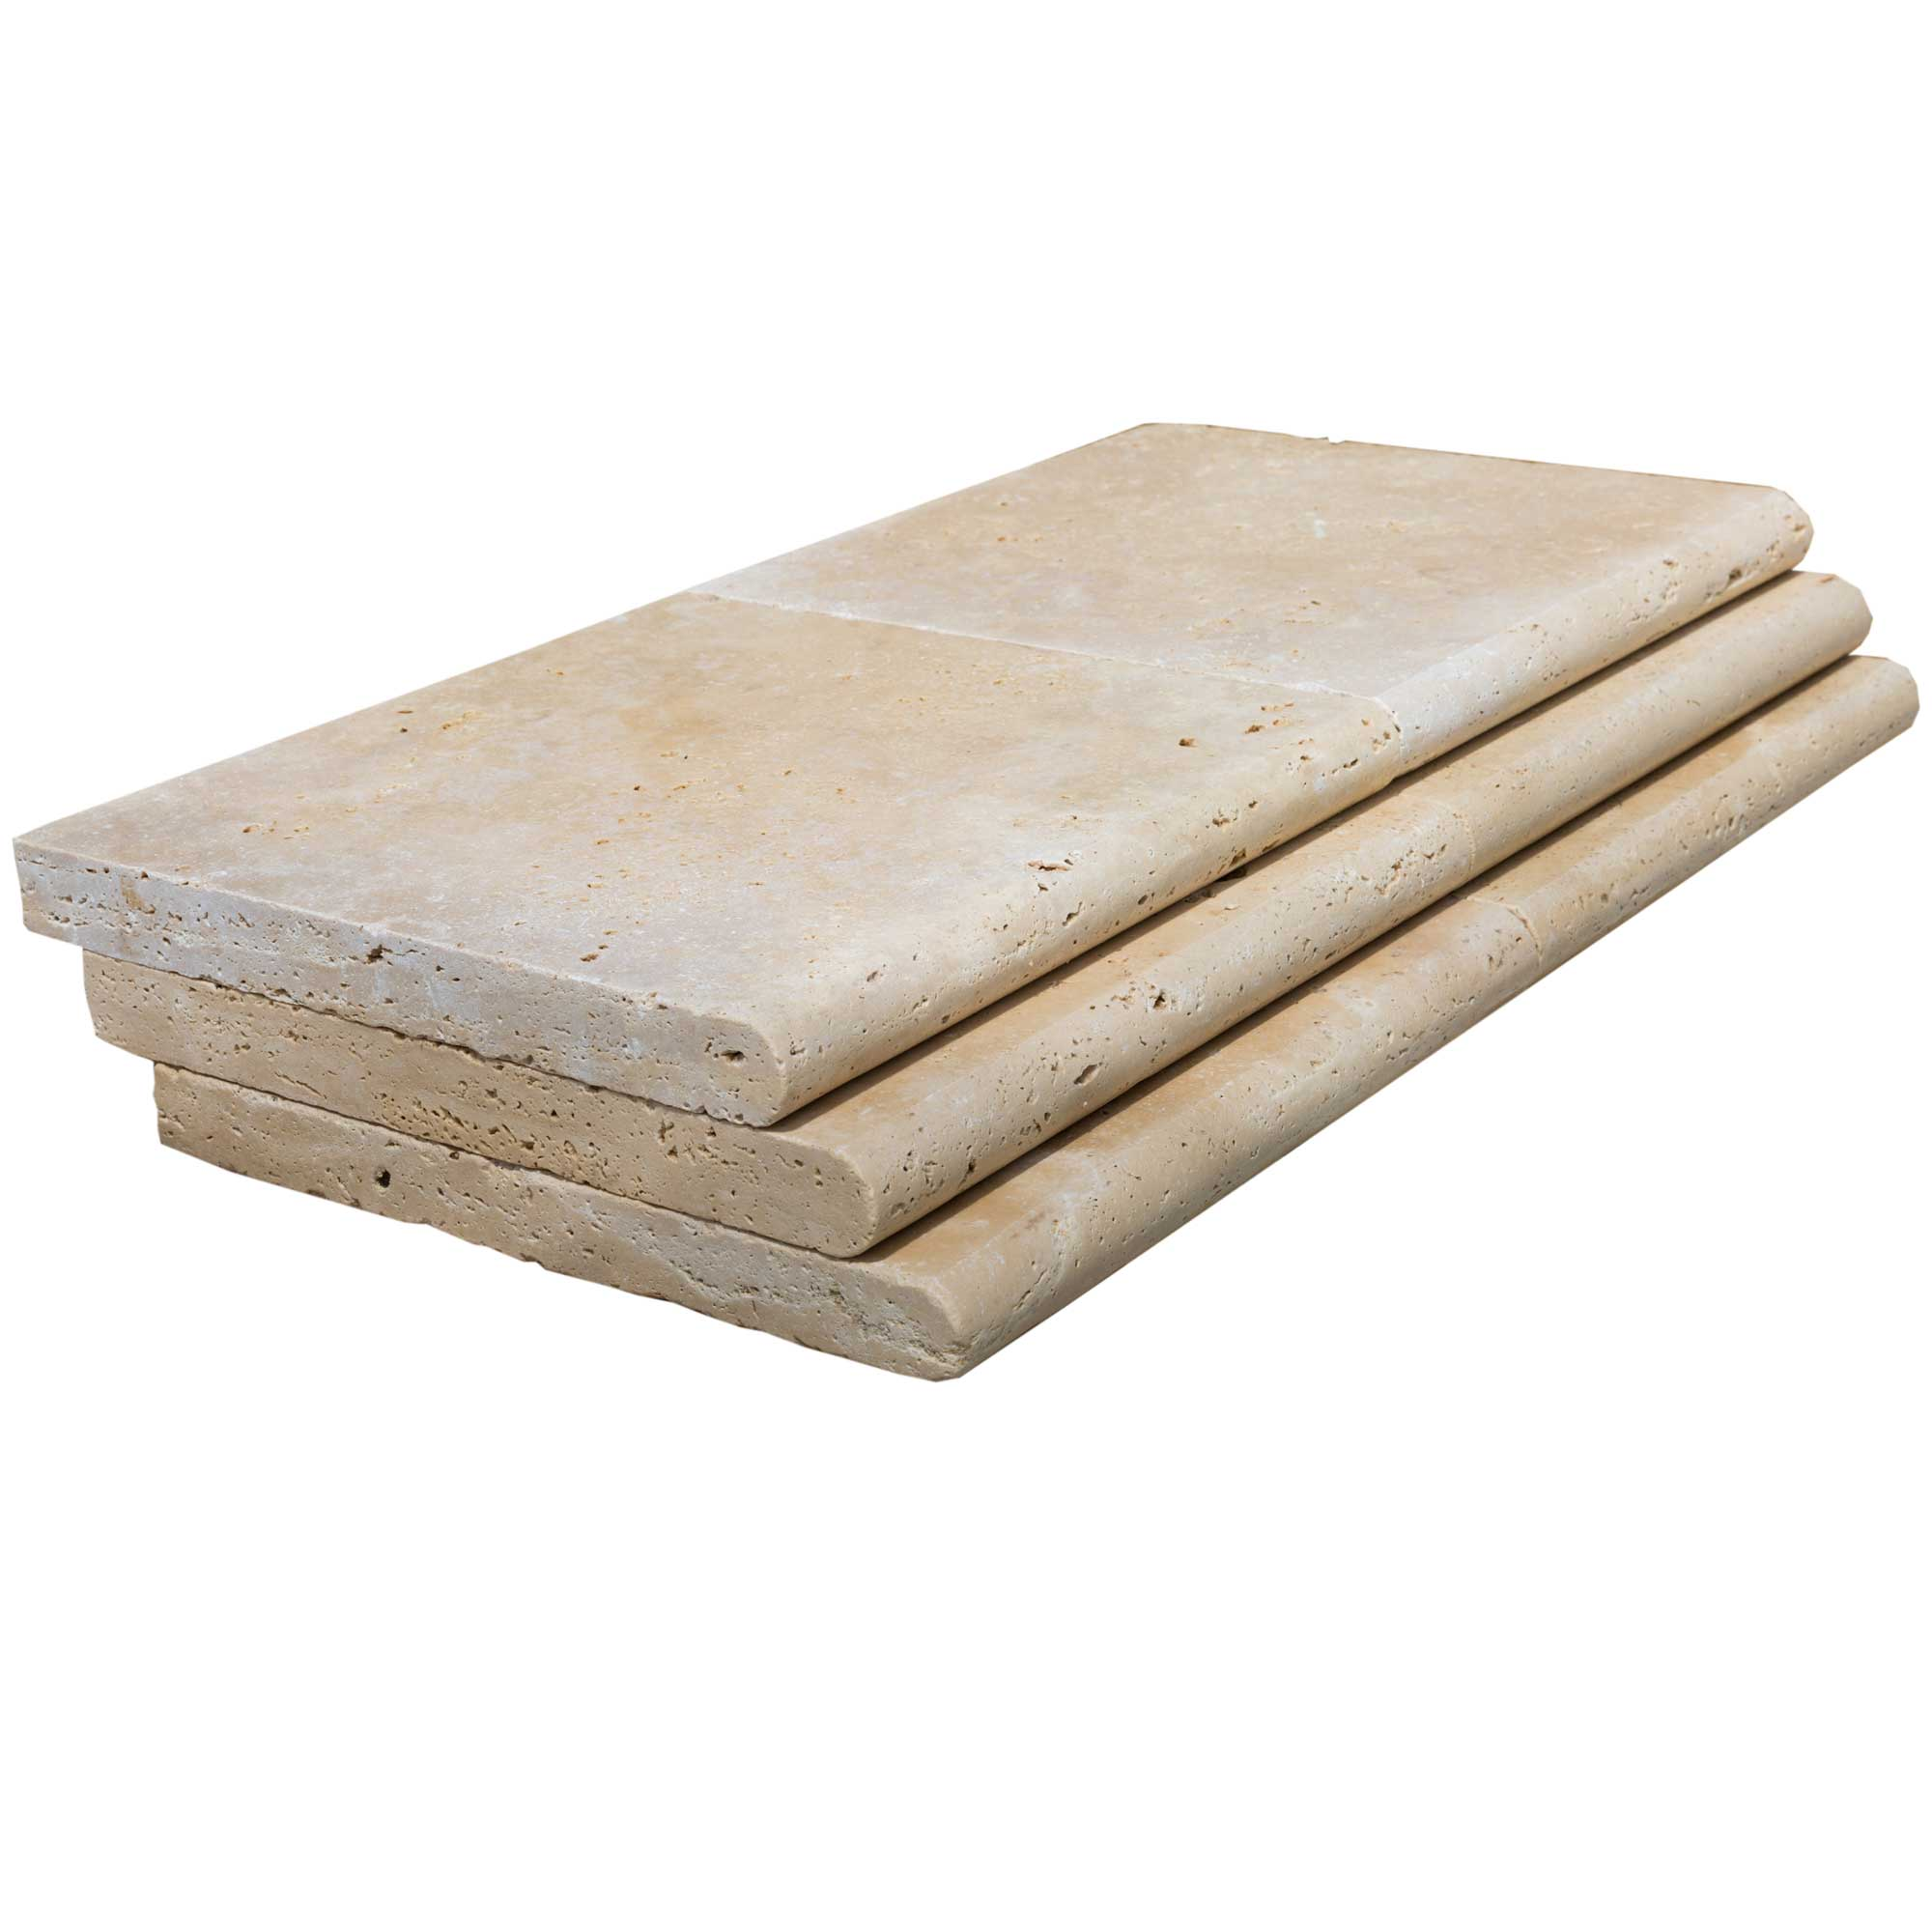 2-bullnosed_tumbled_travertine_tile_12x12_www.thulahome.com_5623